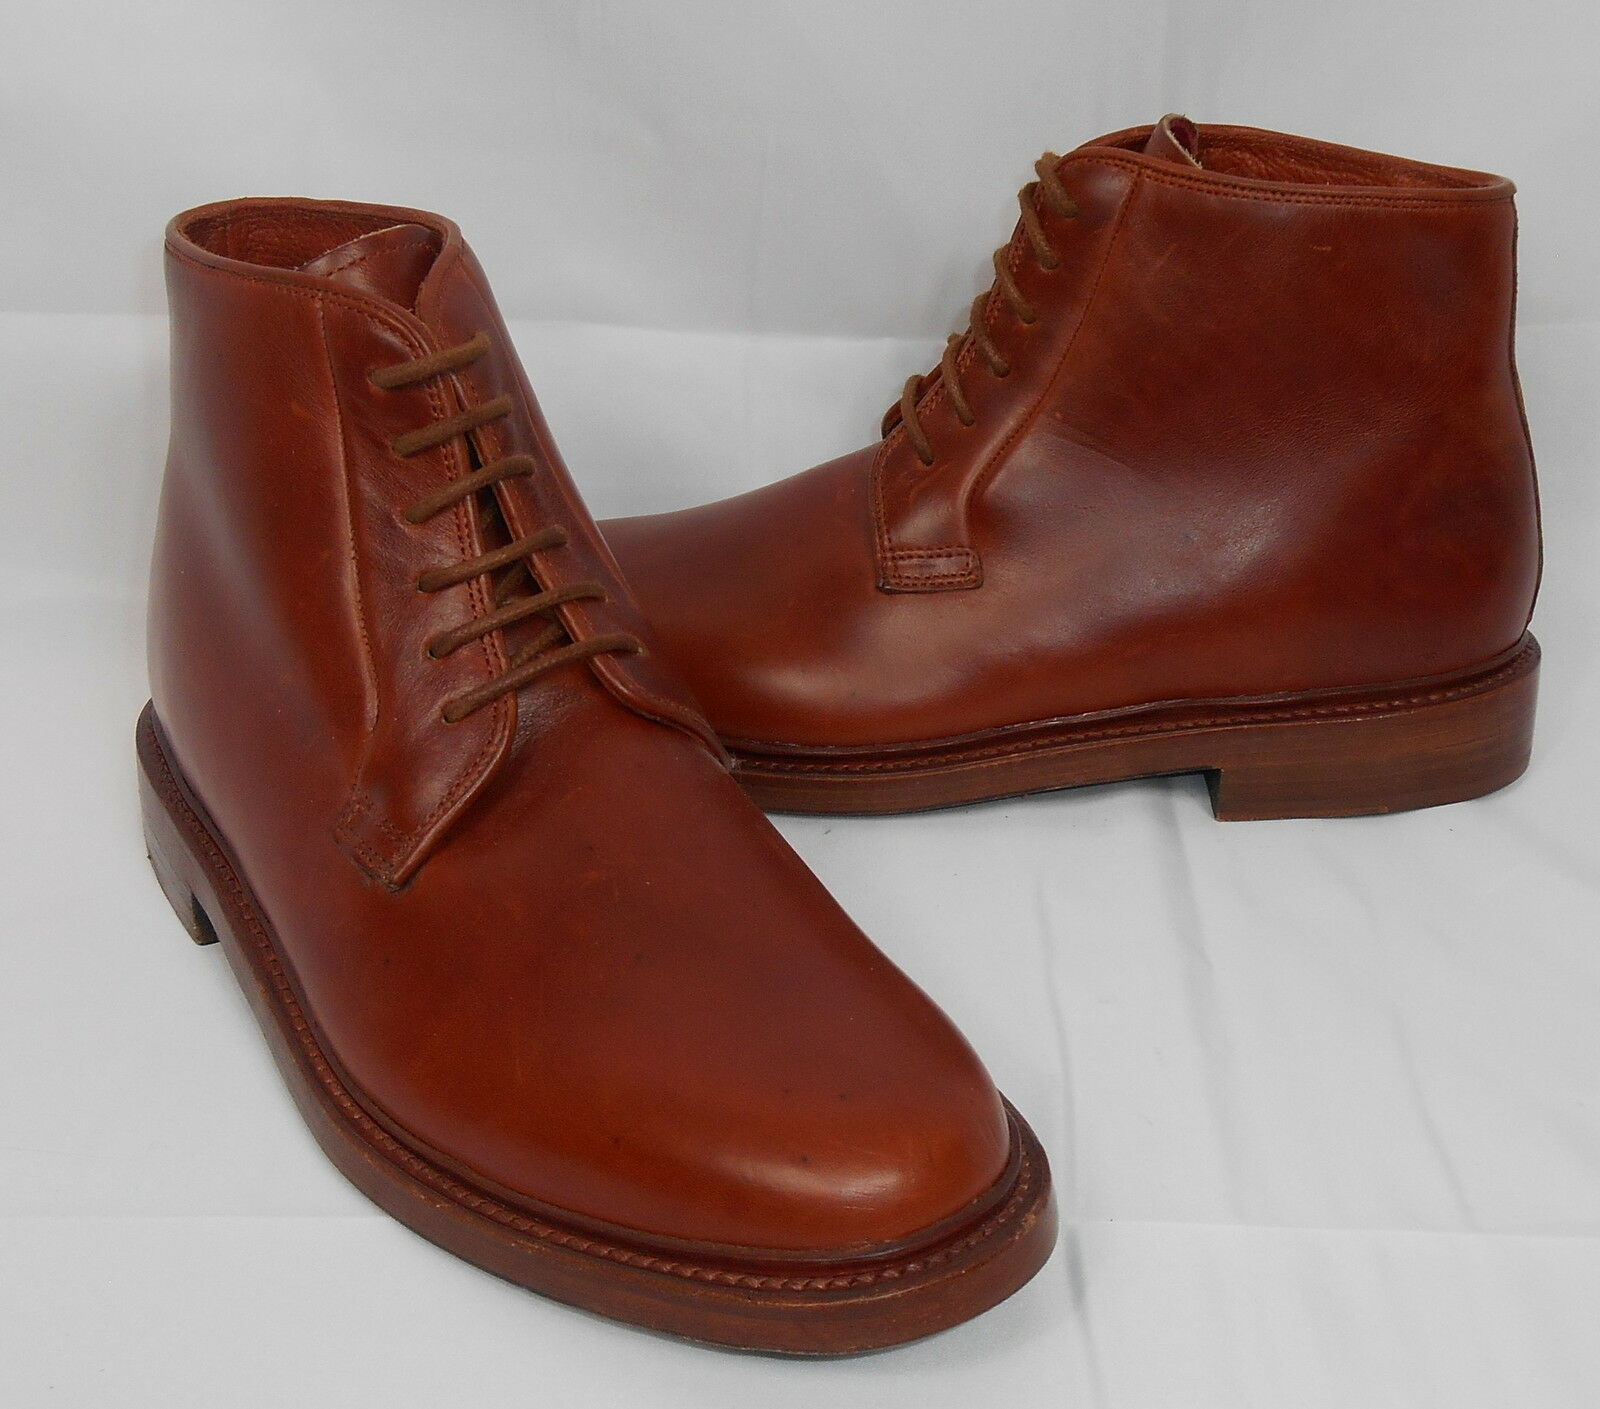 NEW  Florsheim by Duckie Military Boots Cognac 7 D